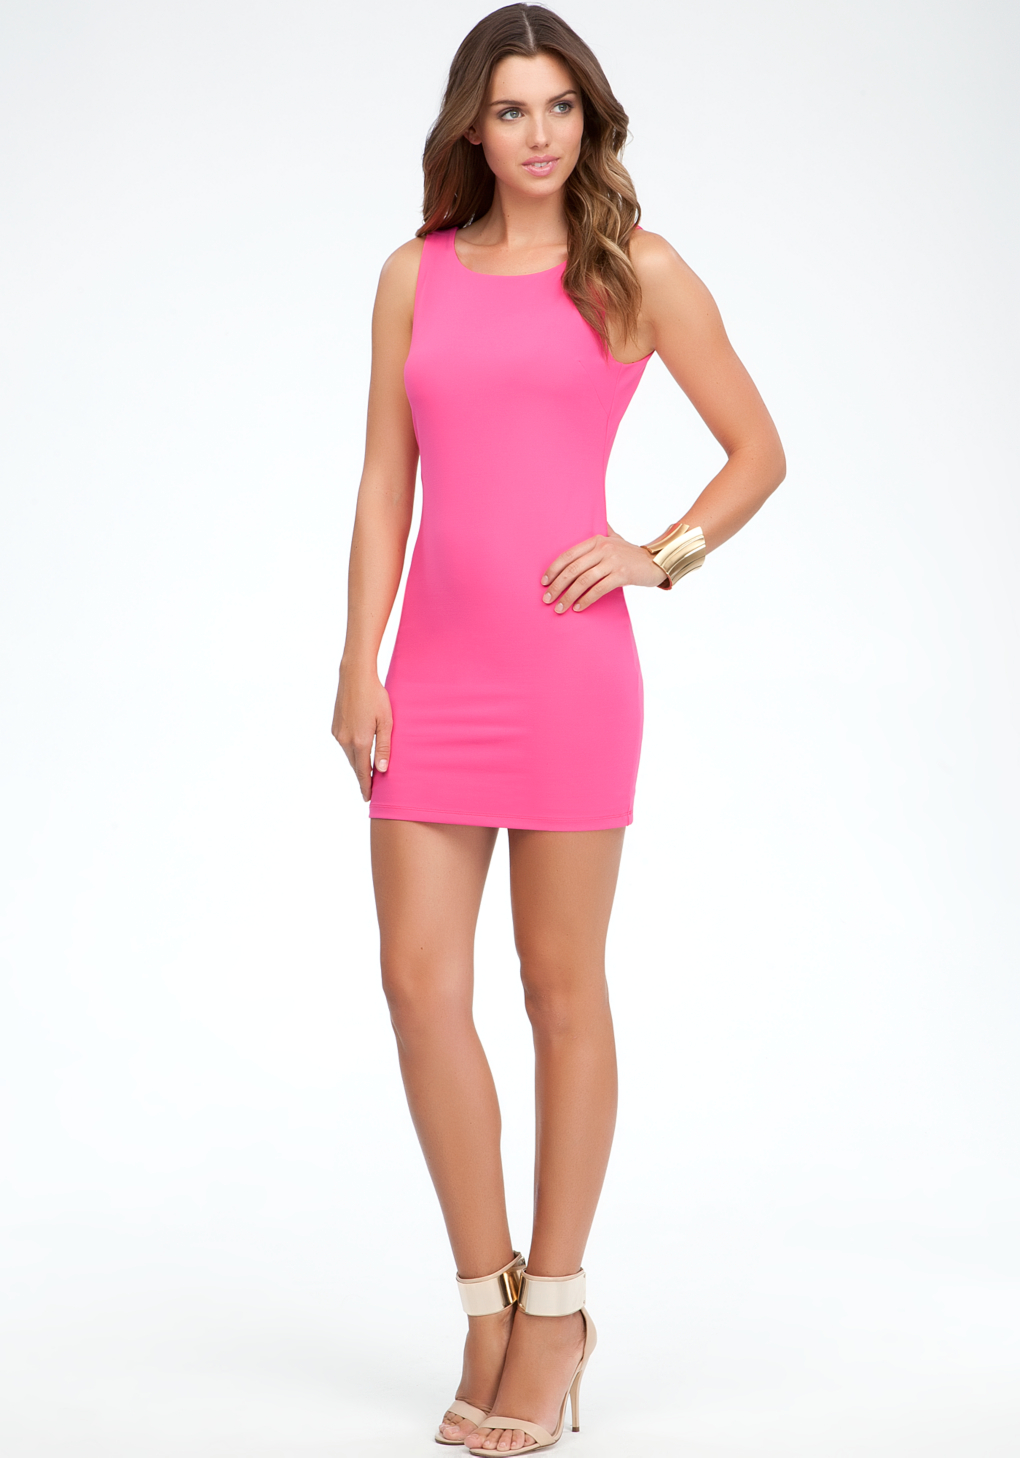 Bebe Exposed Back Bodycon Dress in Pink | Lyst